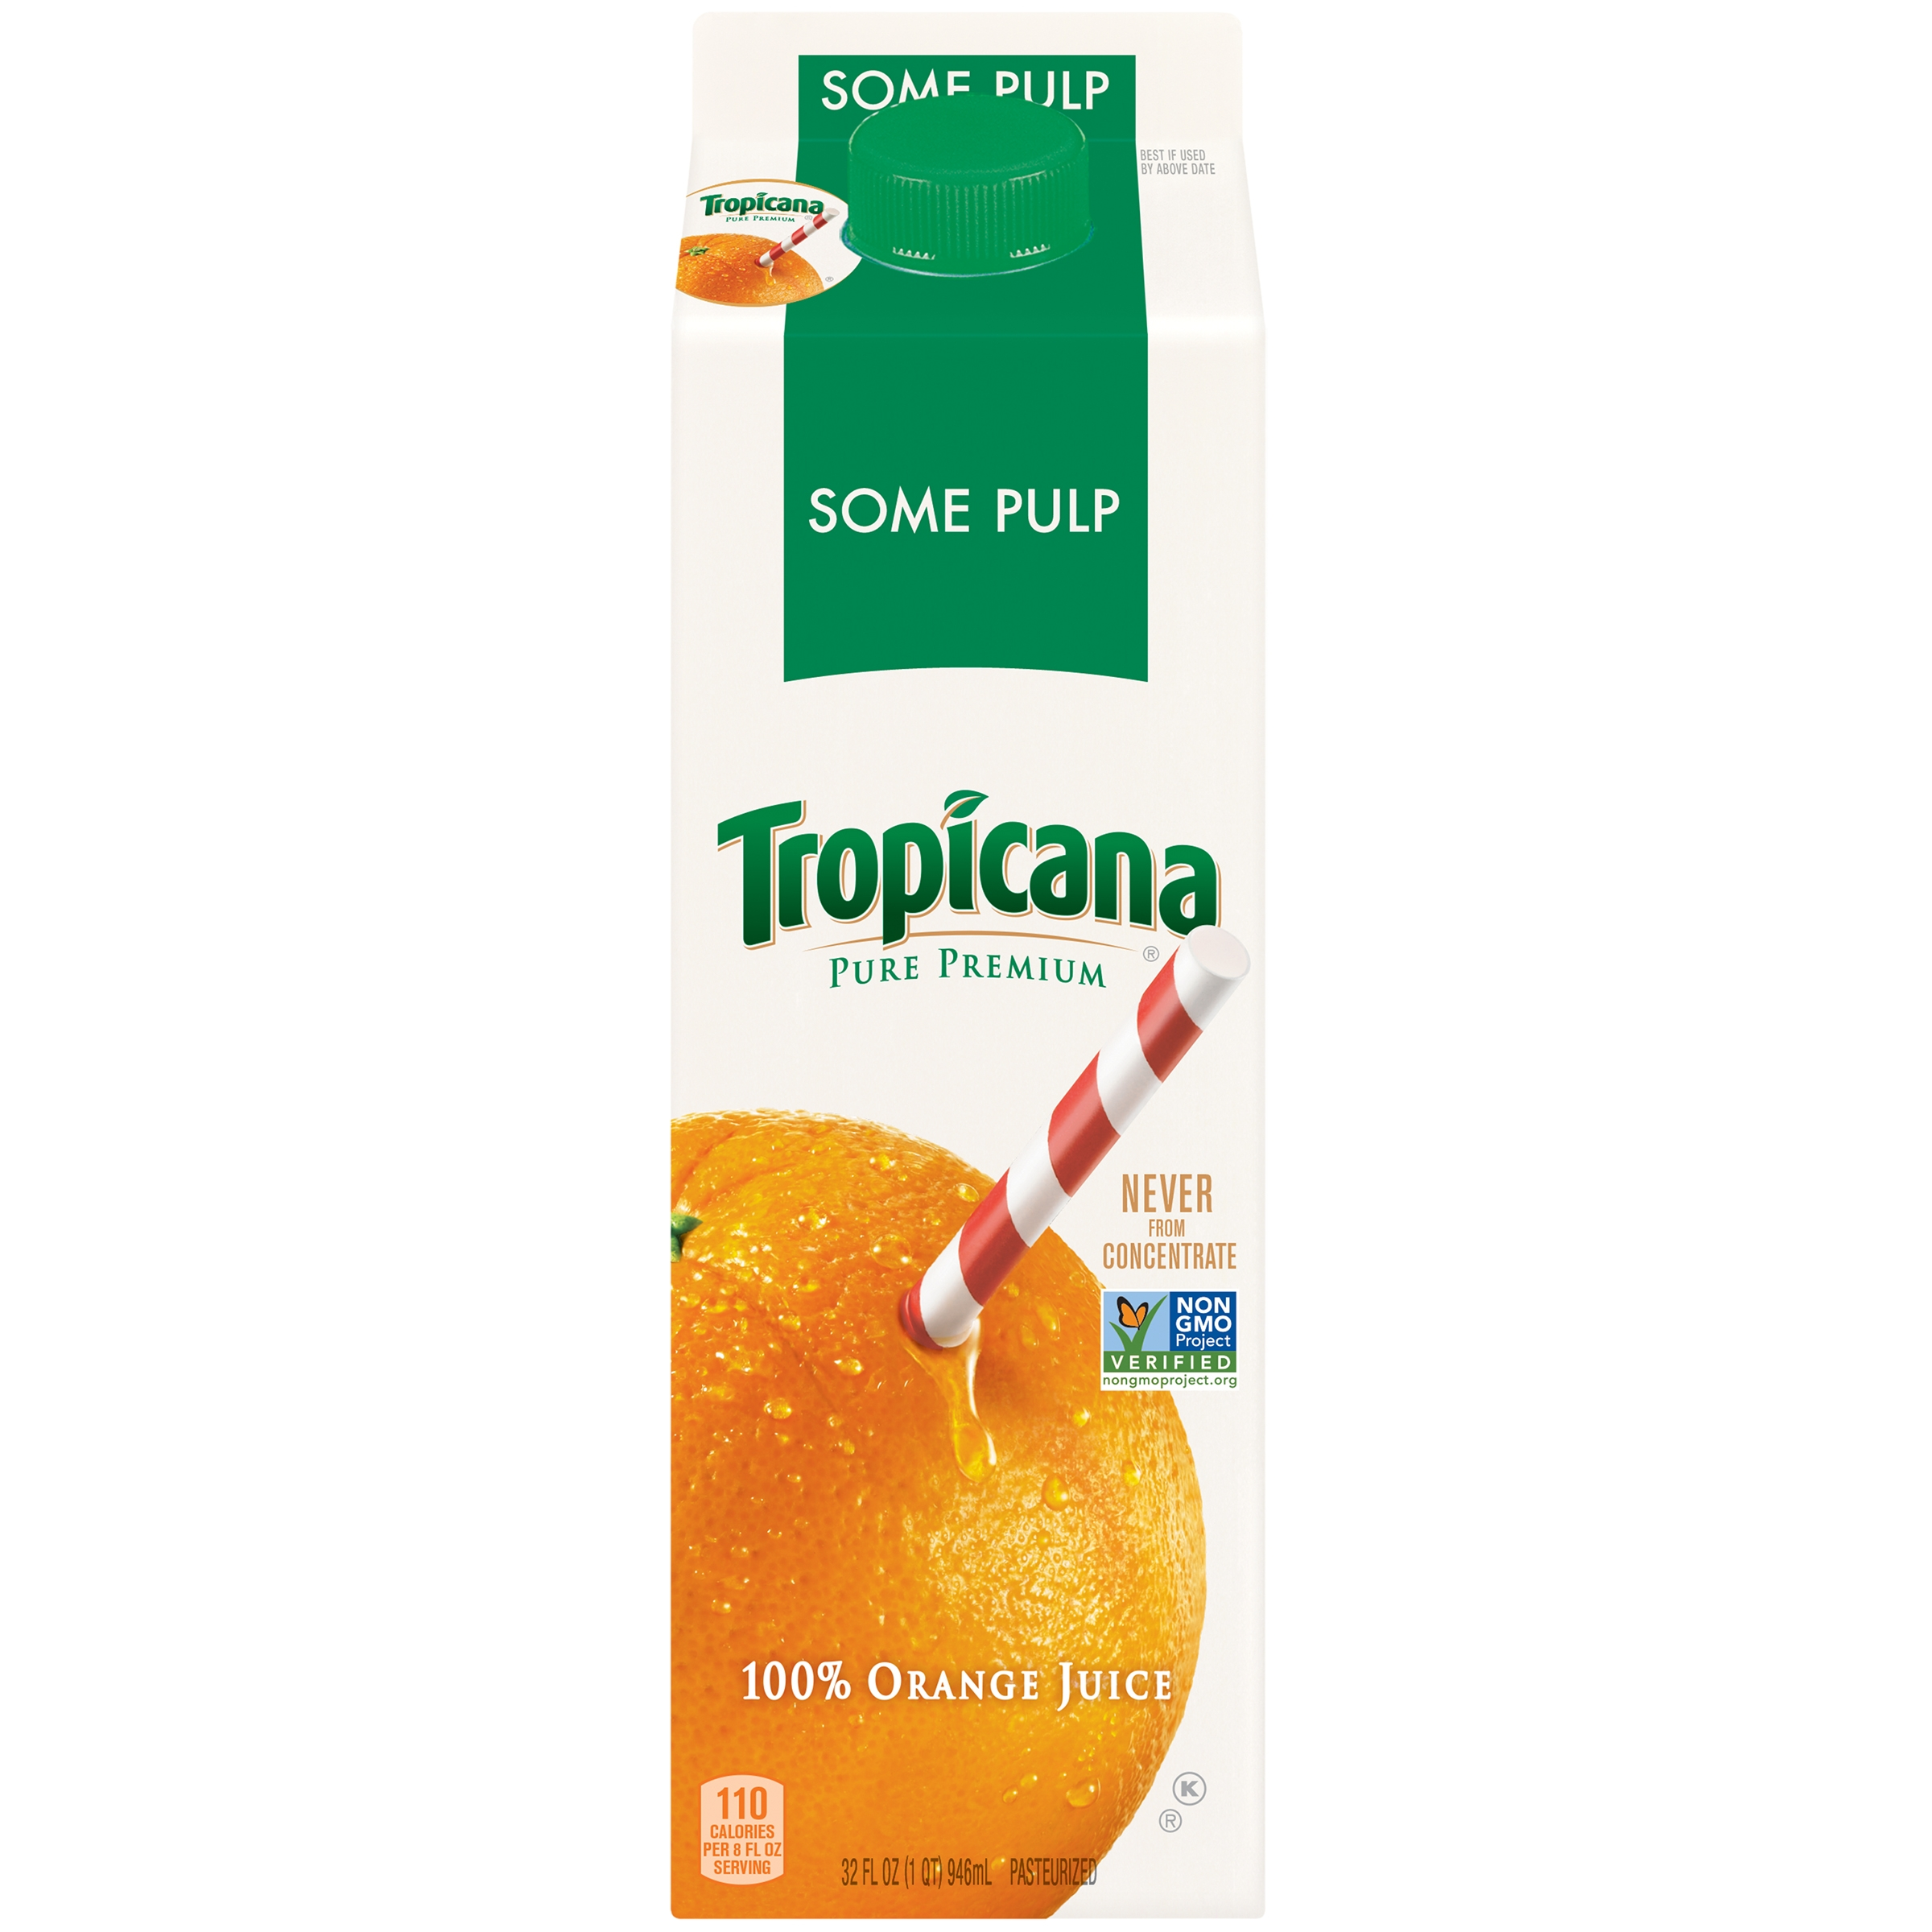 Tropicana Pure Premium Some Pulp Orange Juice 32 oz. Carton